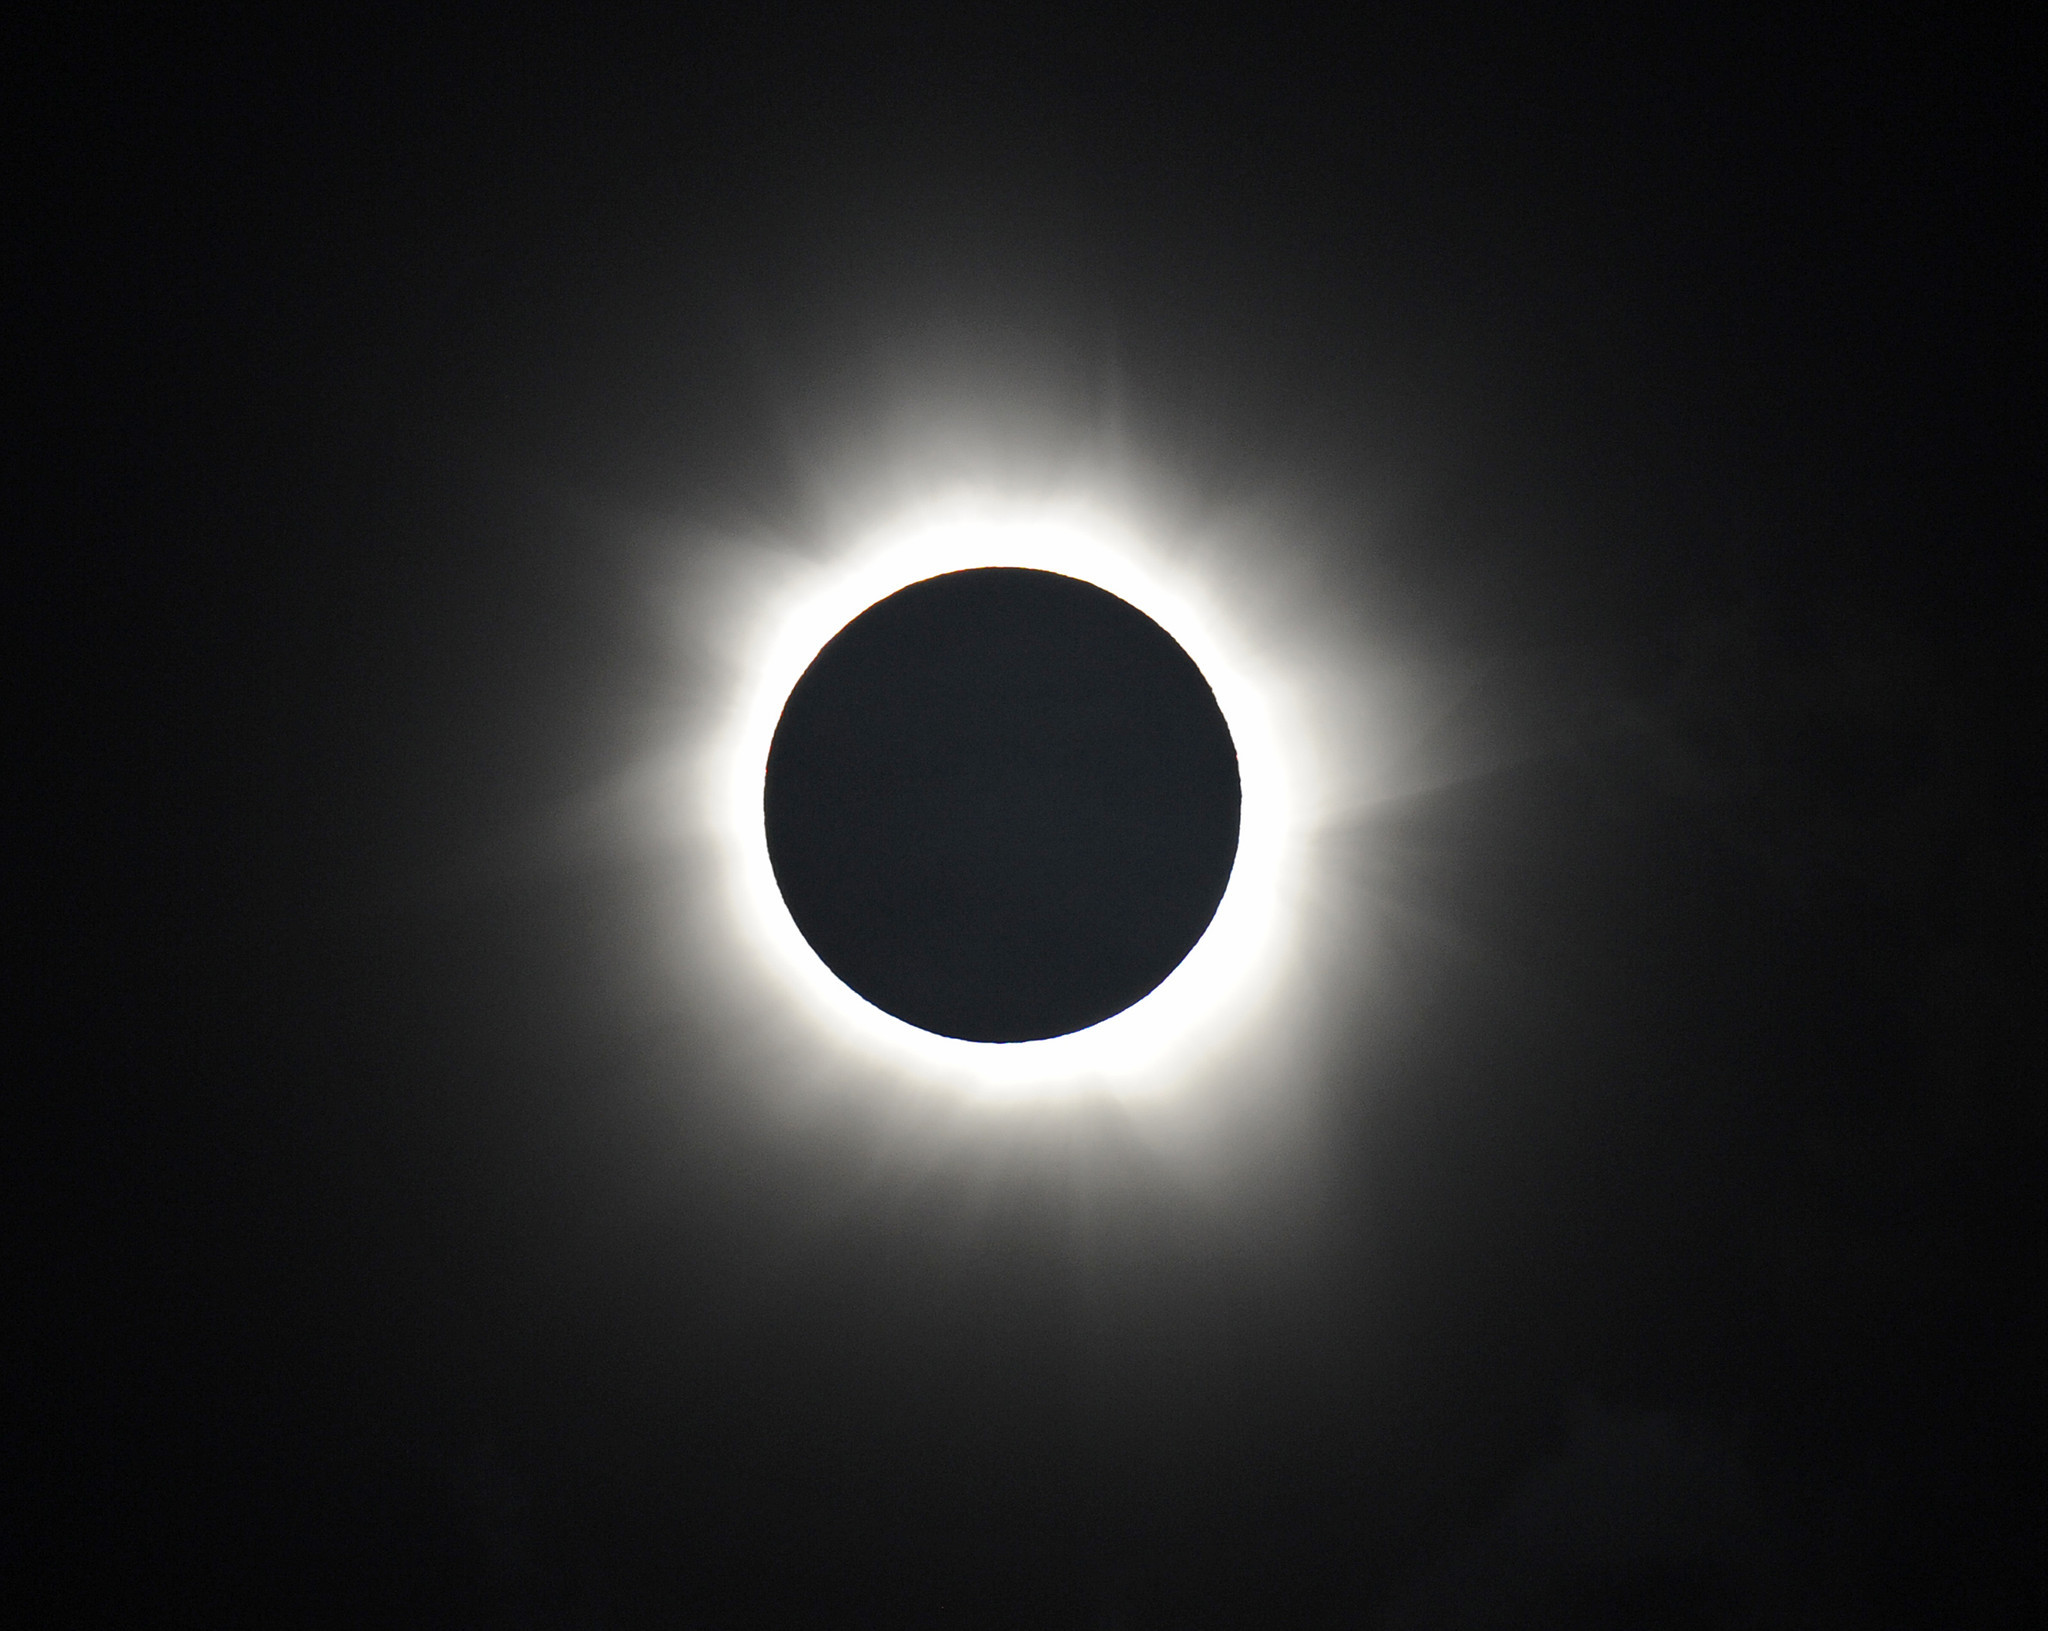 Totality is shown during the solar eclipse in Palm Cove, Australia, on Nov. 14, 2012.